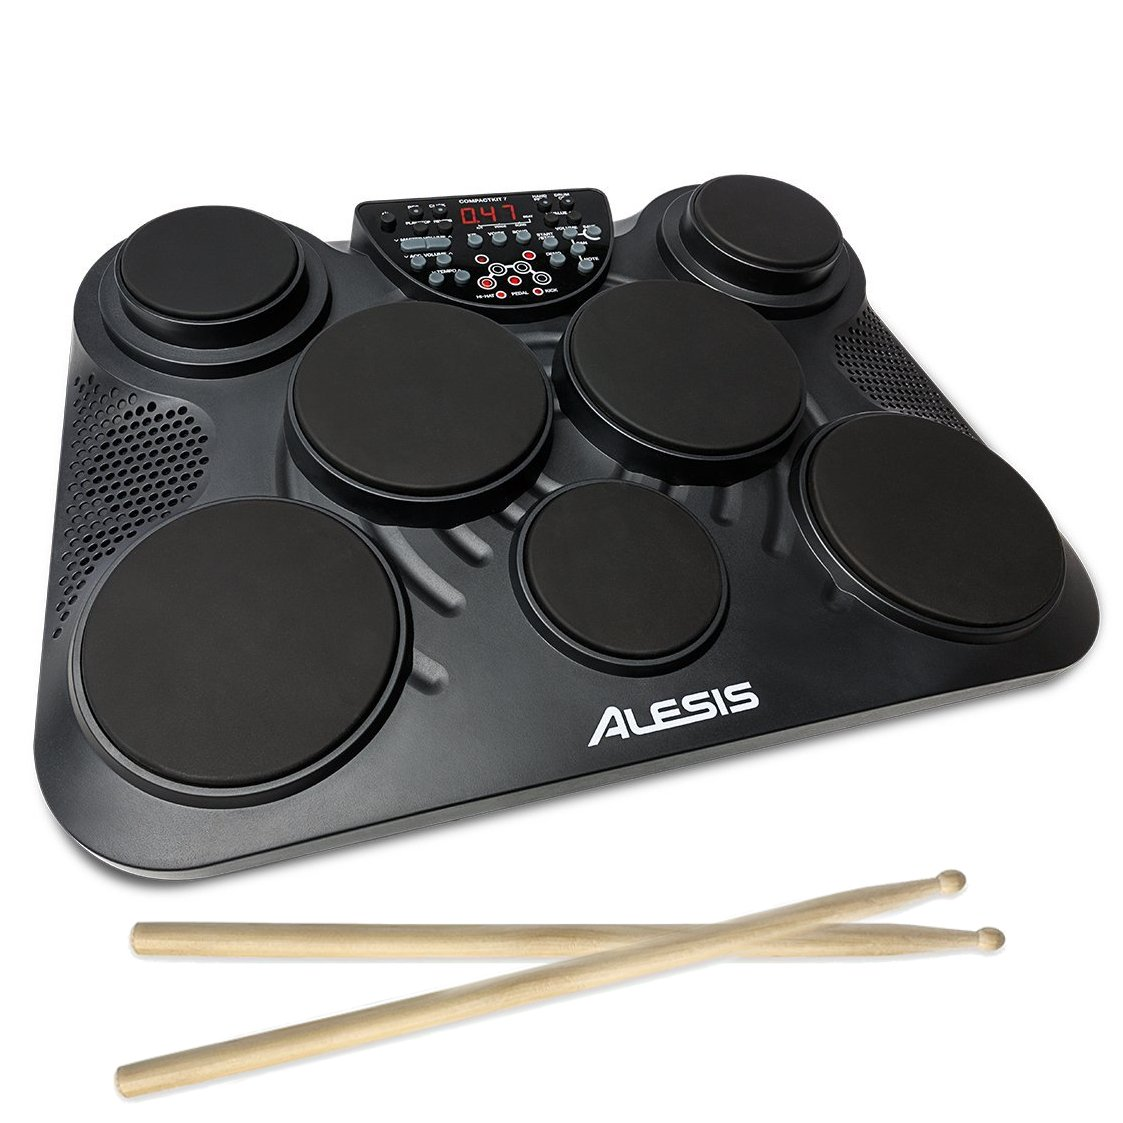 Alesis CompactKit 7 | Portable 7-Pad Tabletop Electronic Drum Kit with Drumsticks & Footswitch Pedals by Alesis